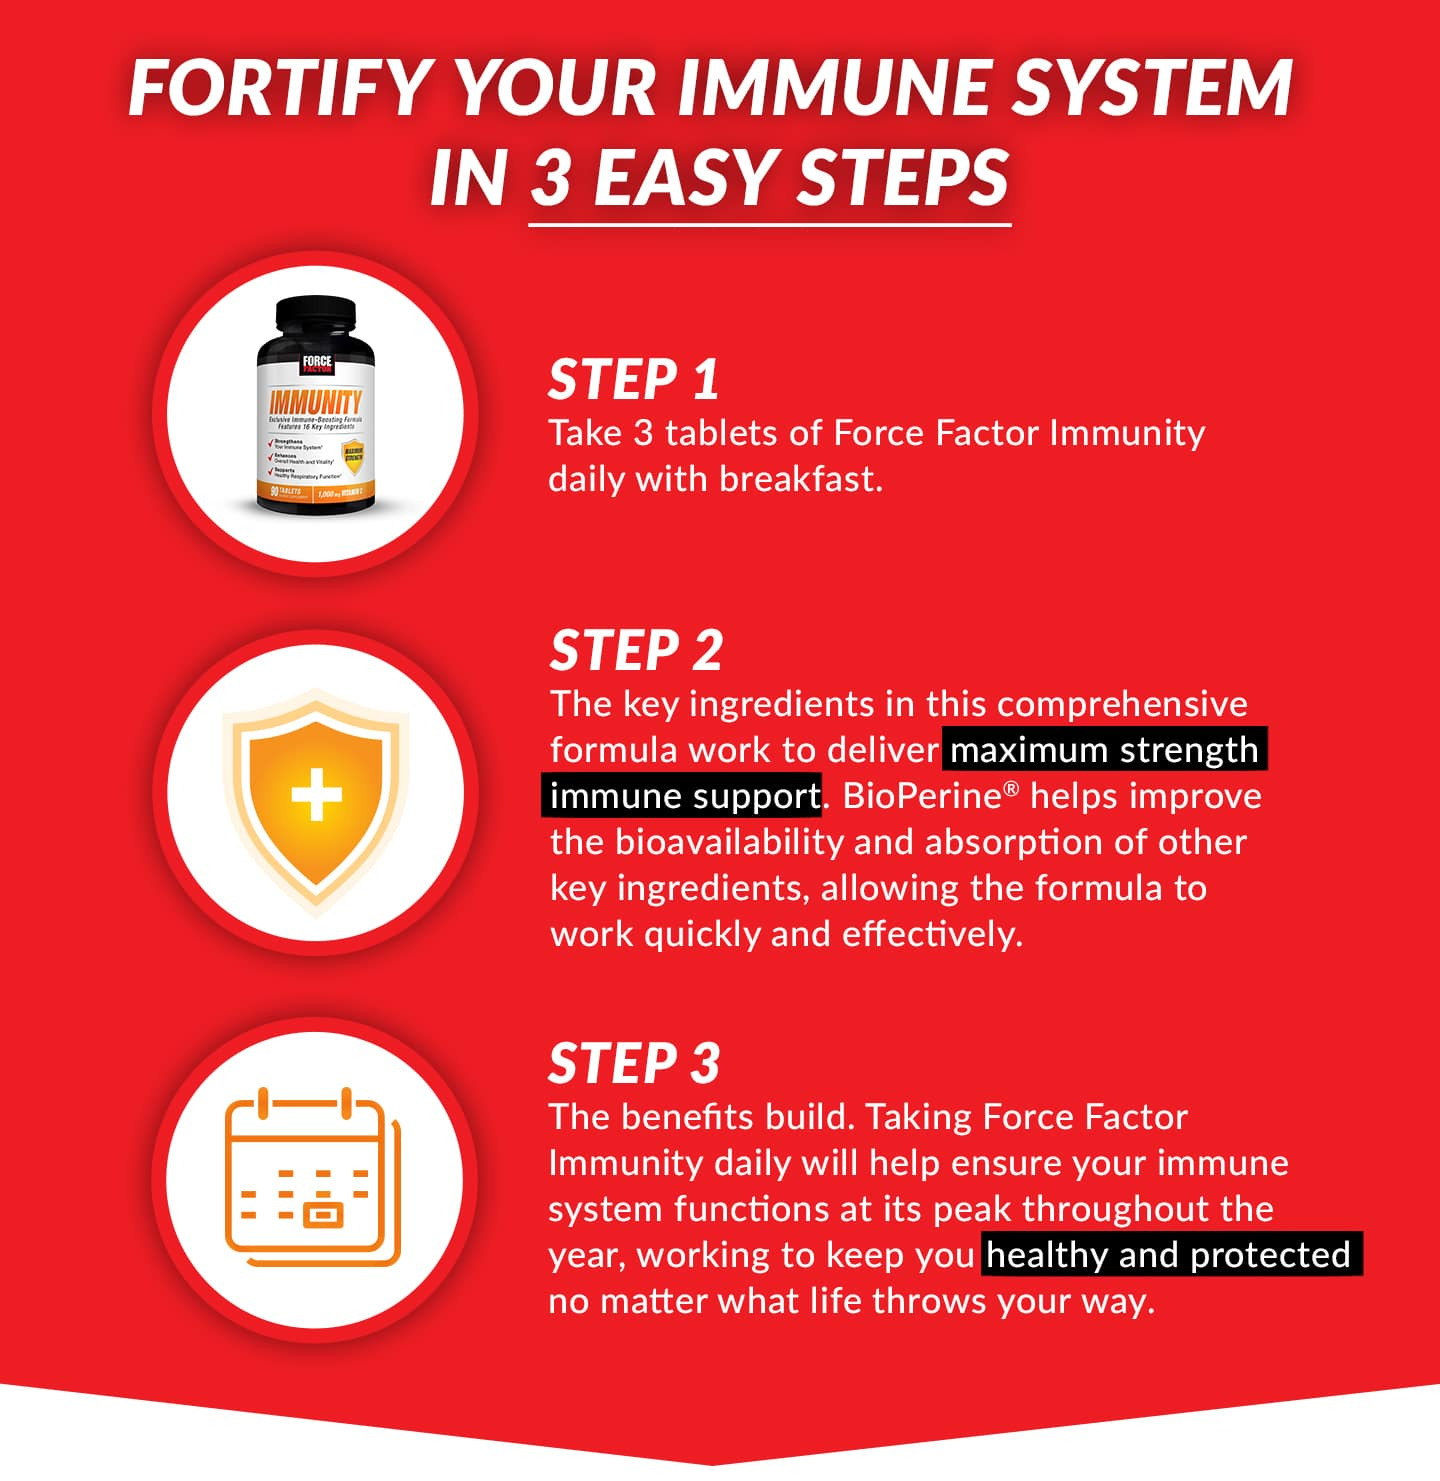 FORTIFY YOUR IMMUNE SYSTEM IN 3 EASY STEPS. STEP 1 - Take 3 tablets of Force Factor Immunity daily with breakfast. STEP 2 - The key ingredients in this comprehensive formula work to deliver maximum strength immune support. BioPerine® helps improve the bioavailability and absorption of other key ingredients, allowing the formula work quickly and effectively. STEP 3 - The benefits build. Taking Force Factor Immunity daily will help ensure your immune system functions at its peak throughout the year, working to keep you healthy and protected no matter what life throws your way.